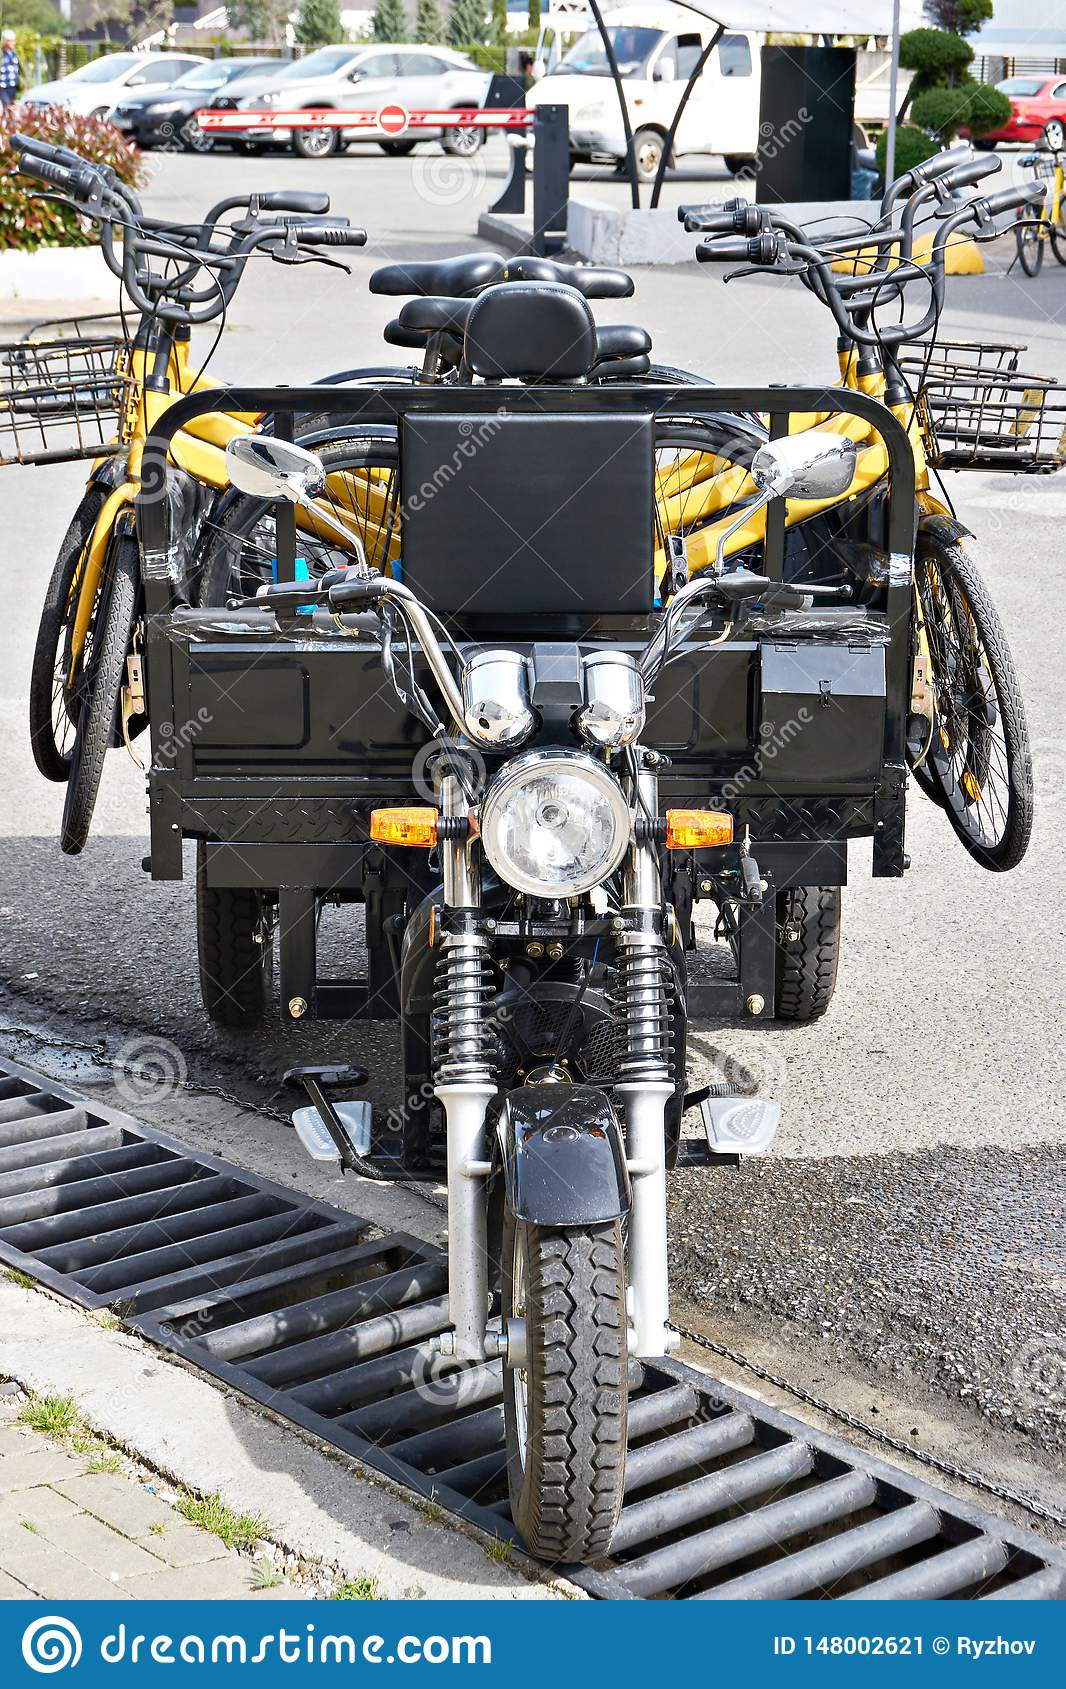 Motorcycle carts with rental bikes